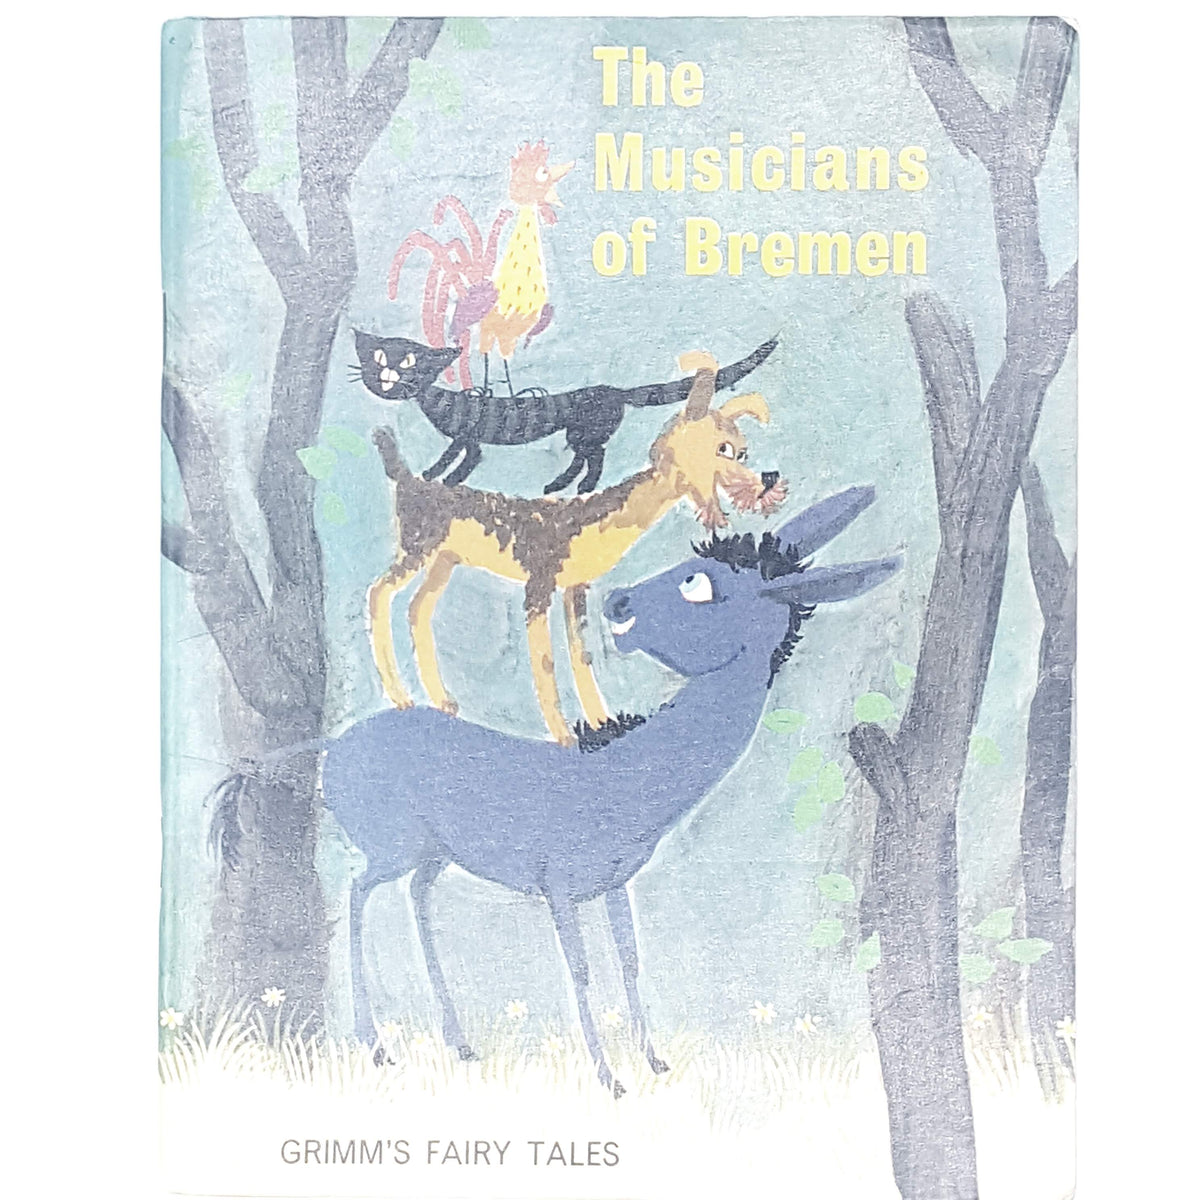 The Musicians of Bremen by the Grimm Brothers 1969